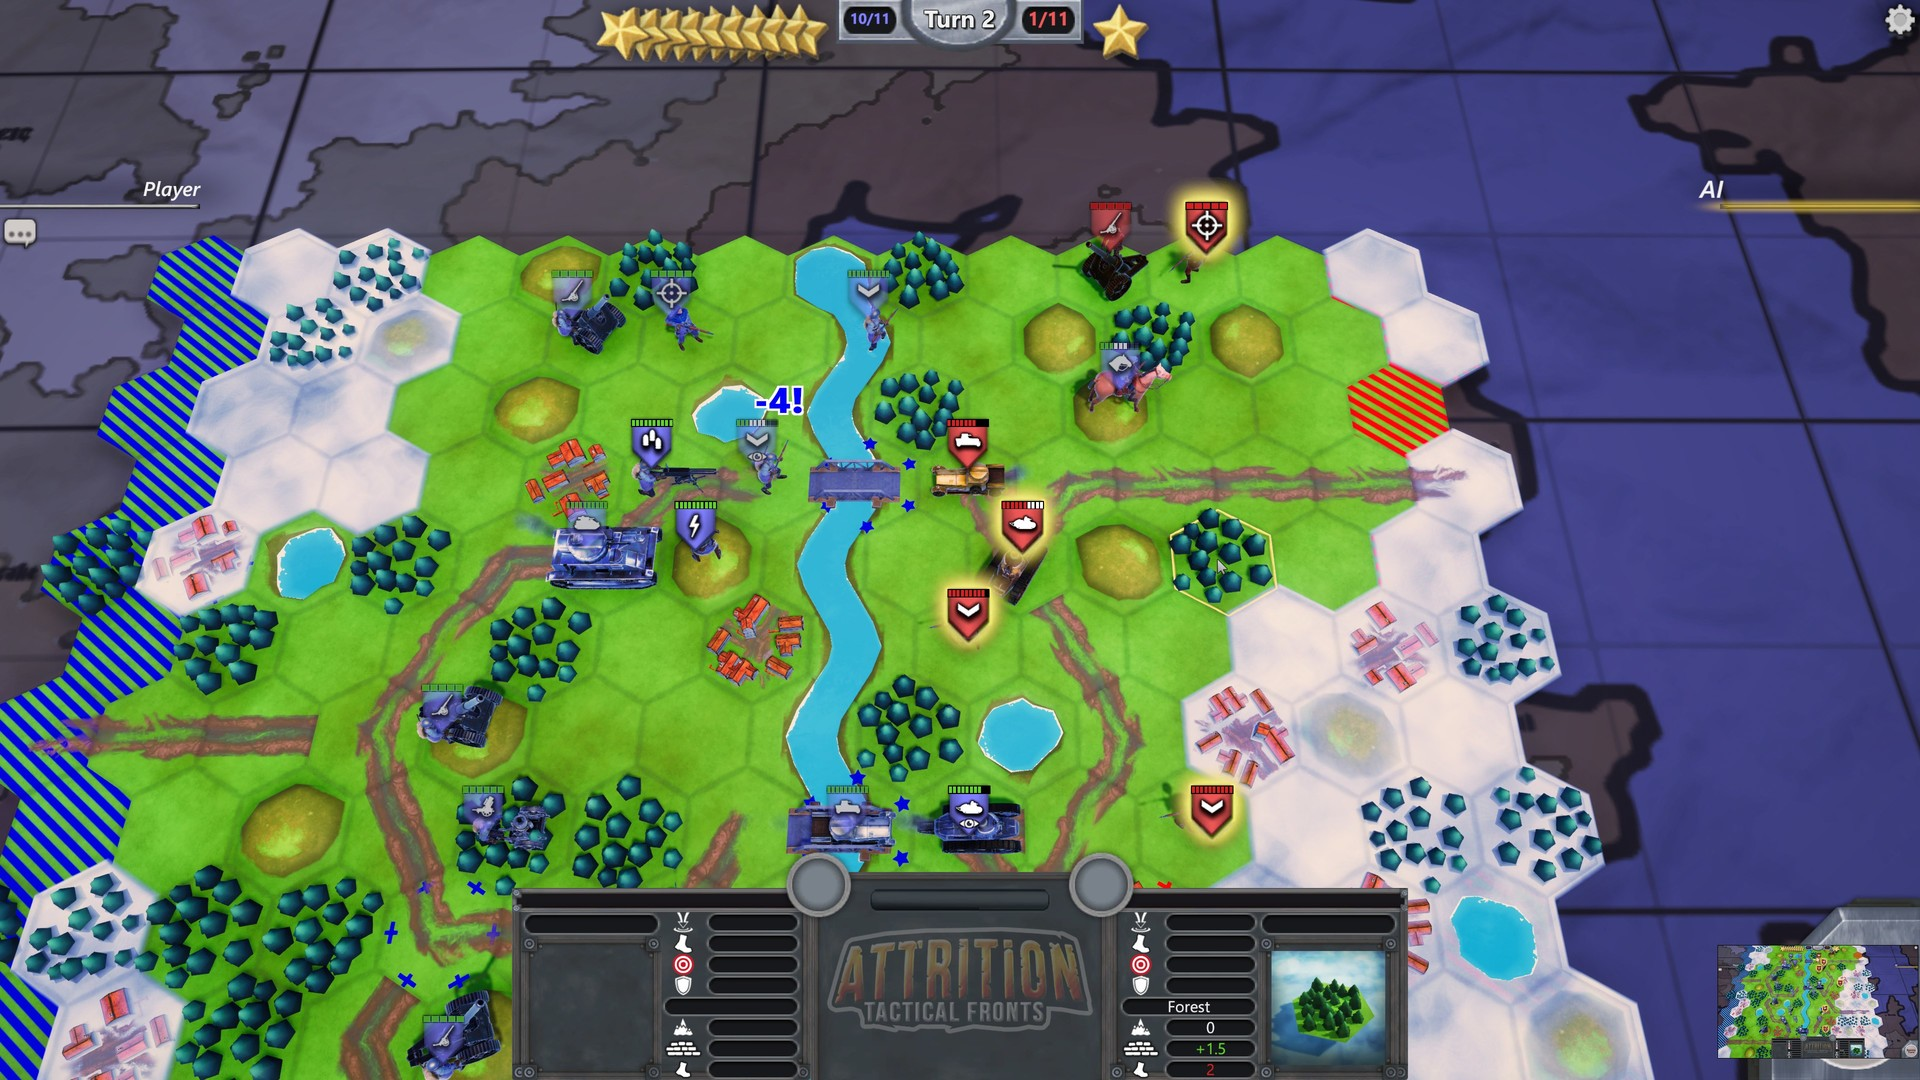 Attrition: Tactical Fronts (Steam key / Region Free)